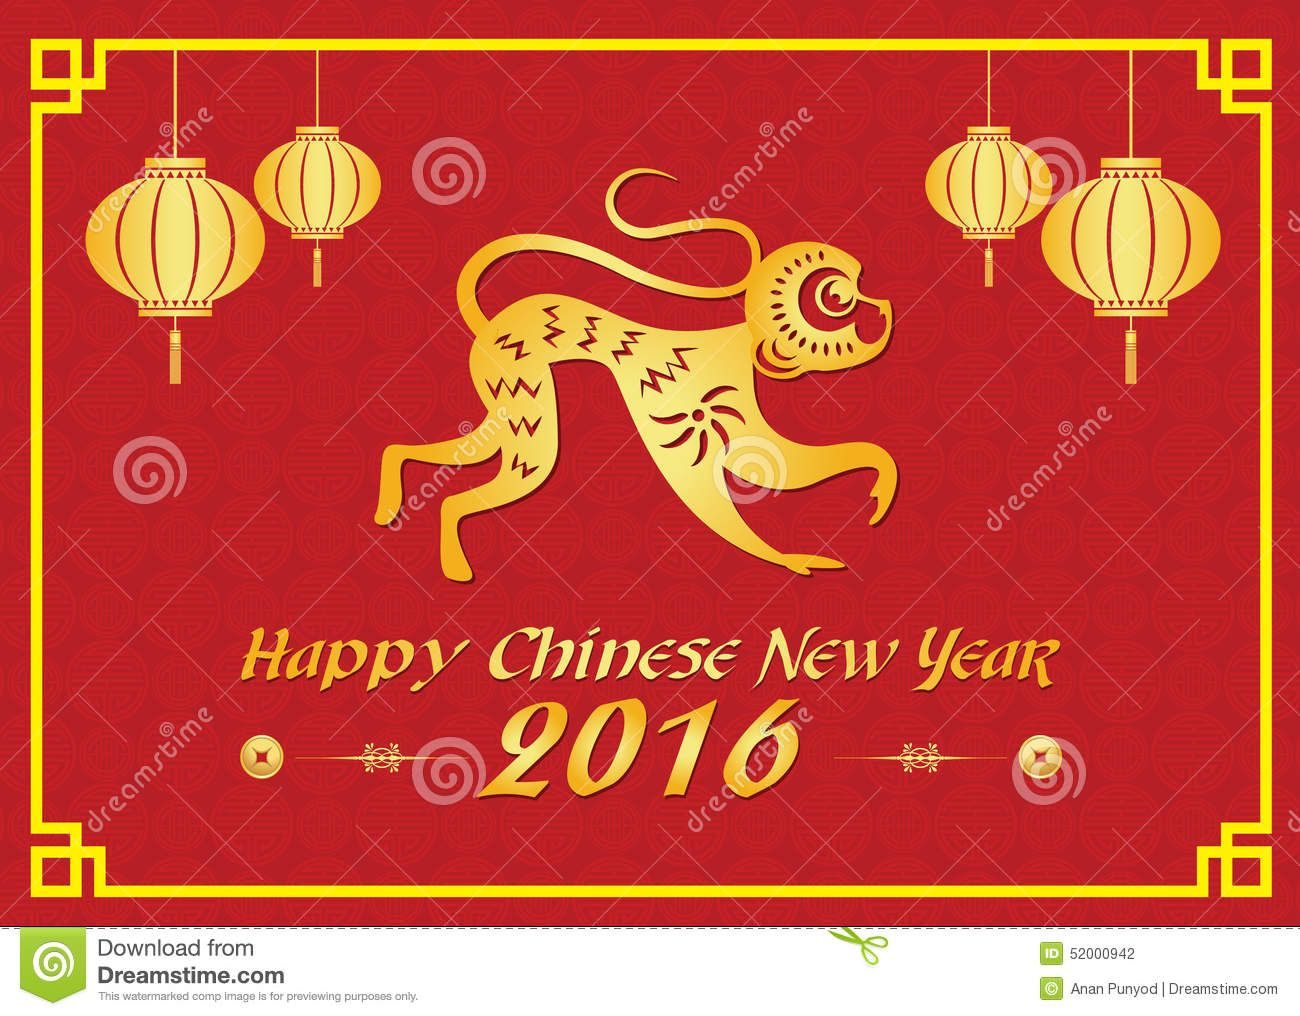 Chinese New Year 2016 Year Of The Monkey Google Search Chinese New Year 2016 Happy Chinese New Year Happy Lunar New Year